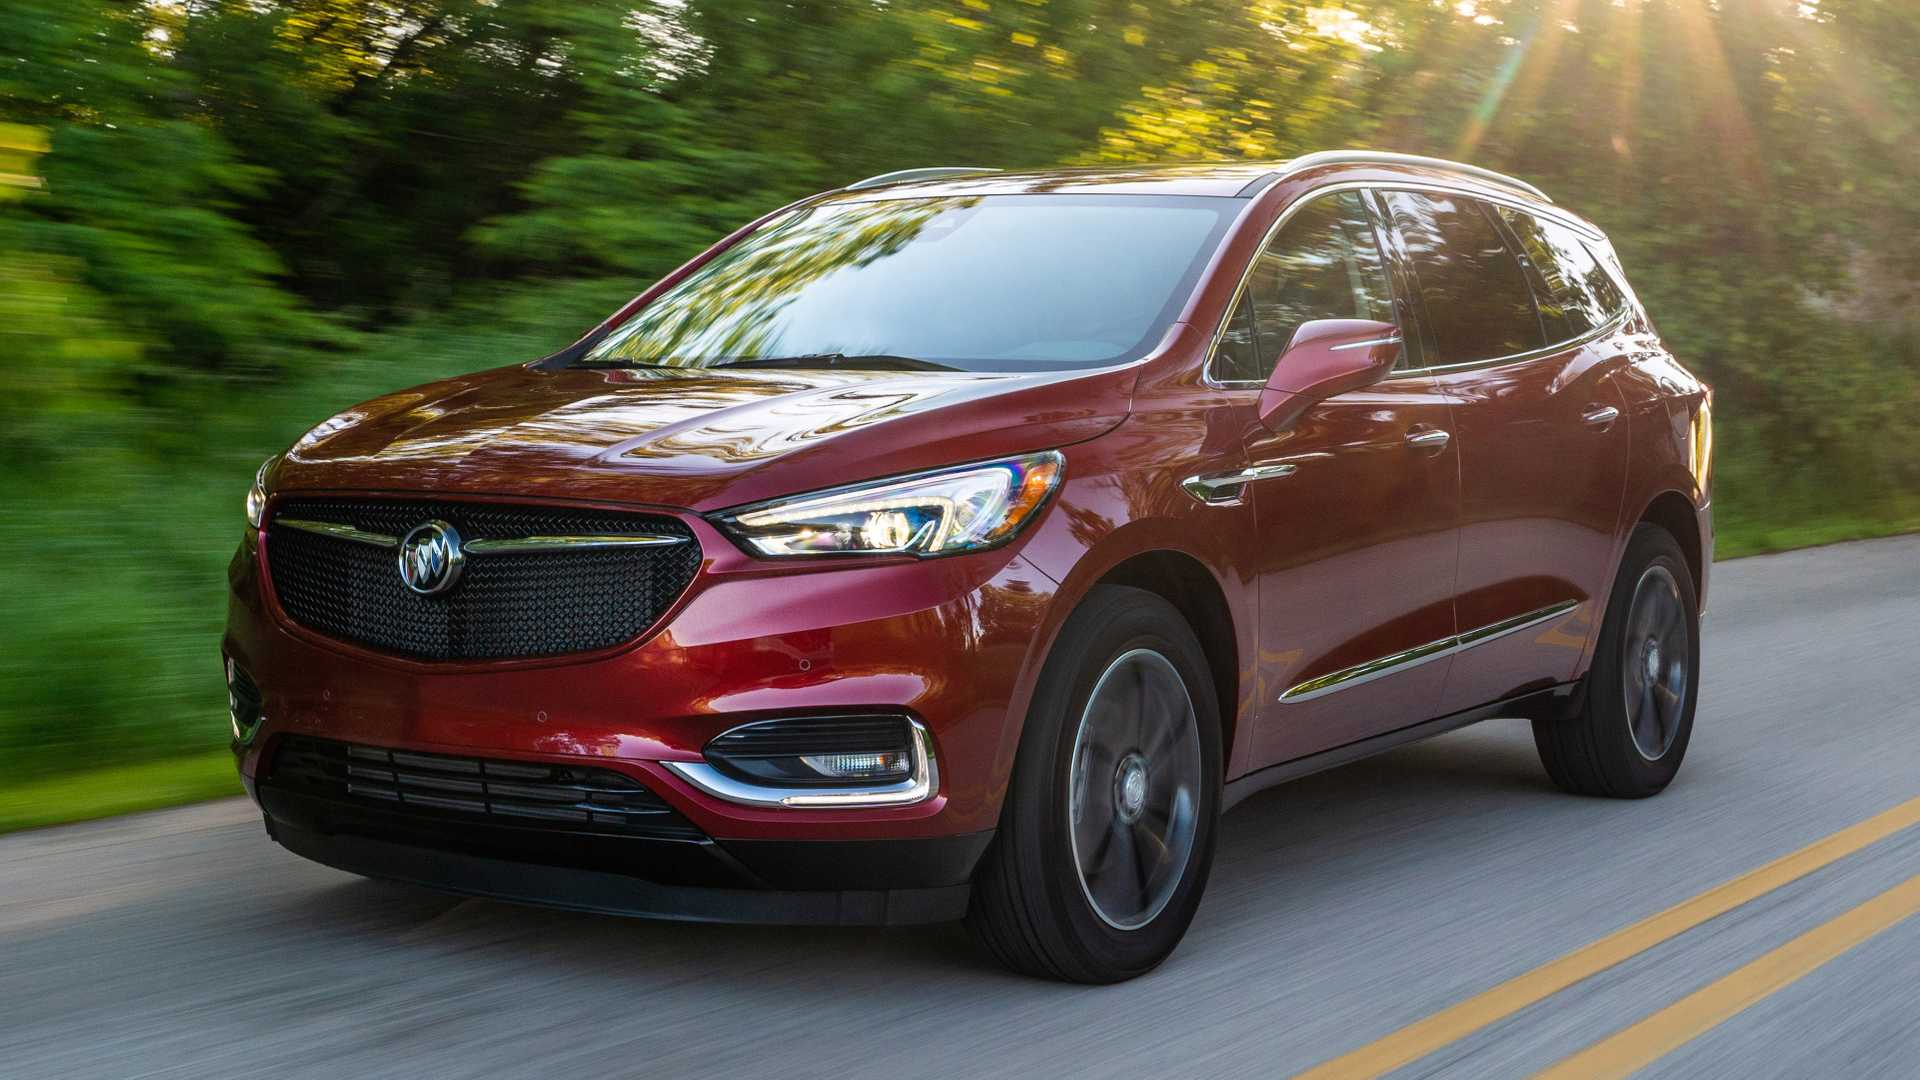 2020 Buick Enclave Debuts With Sport Touring Package 2021 Buick Enclave Avenir Owners Manual, Pictures, Colors